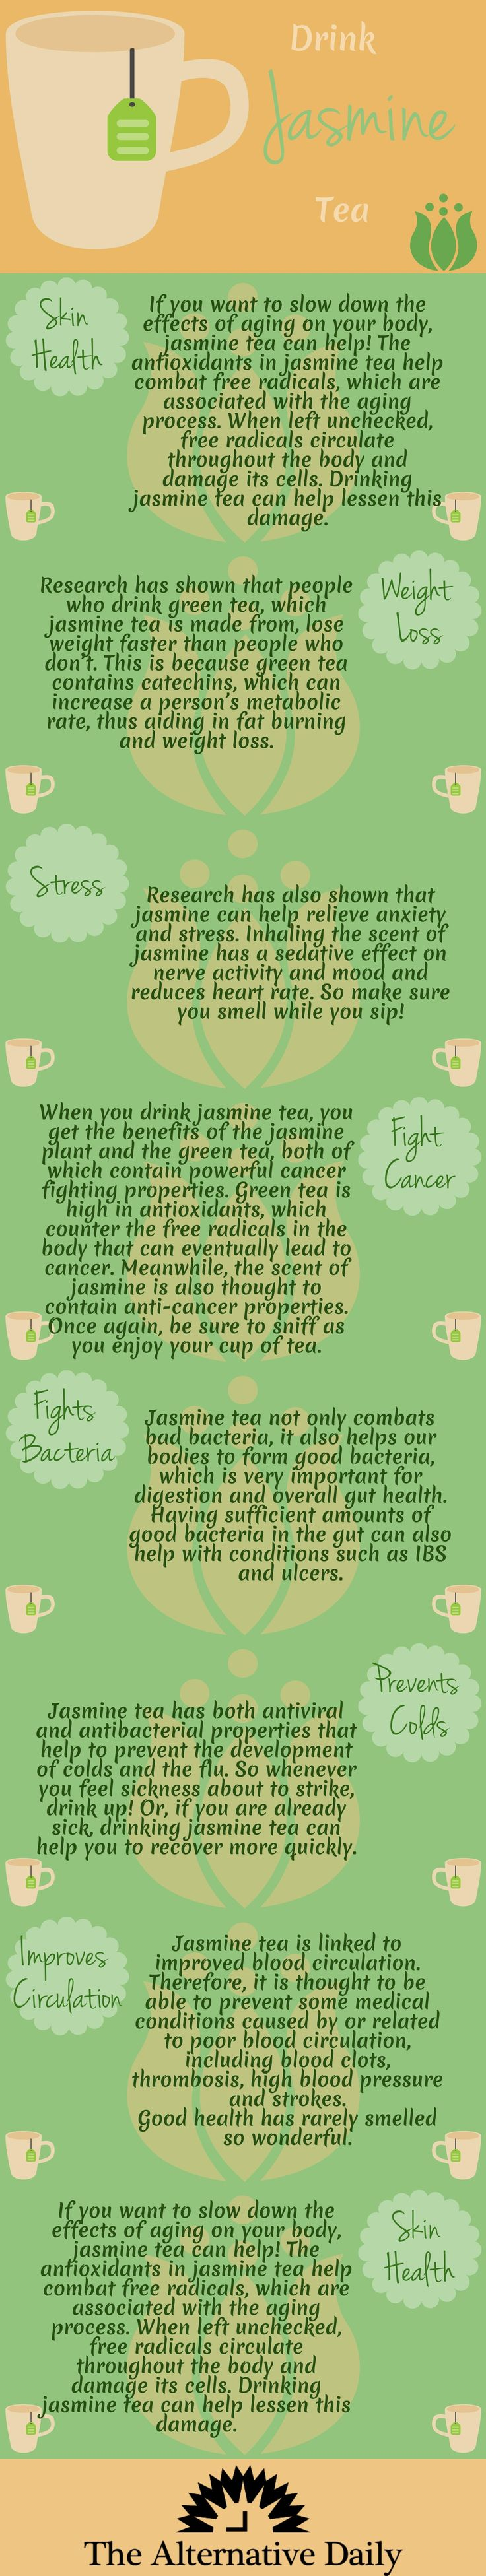 I swear I have a cup of Jasmine and a cup of Mint green tea everyday. If I feel that once a year cold coming on, BOOM tea all day